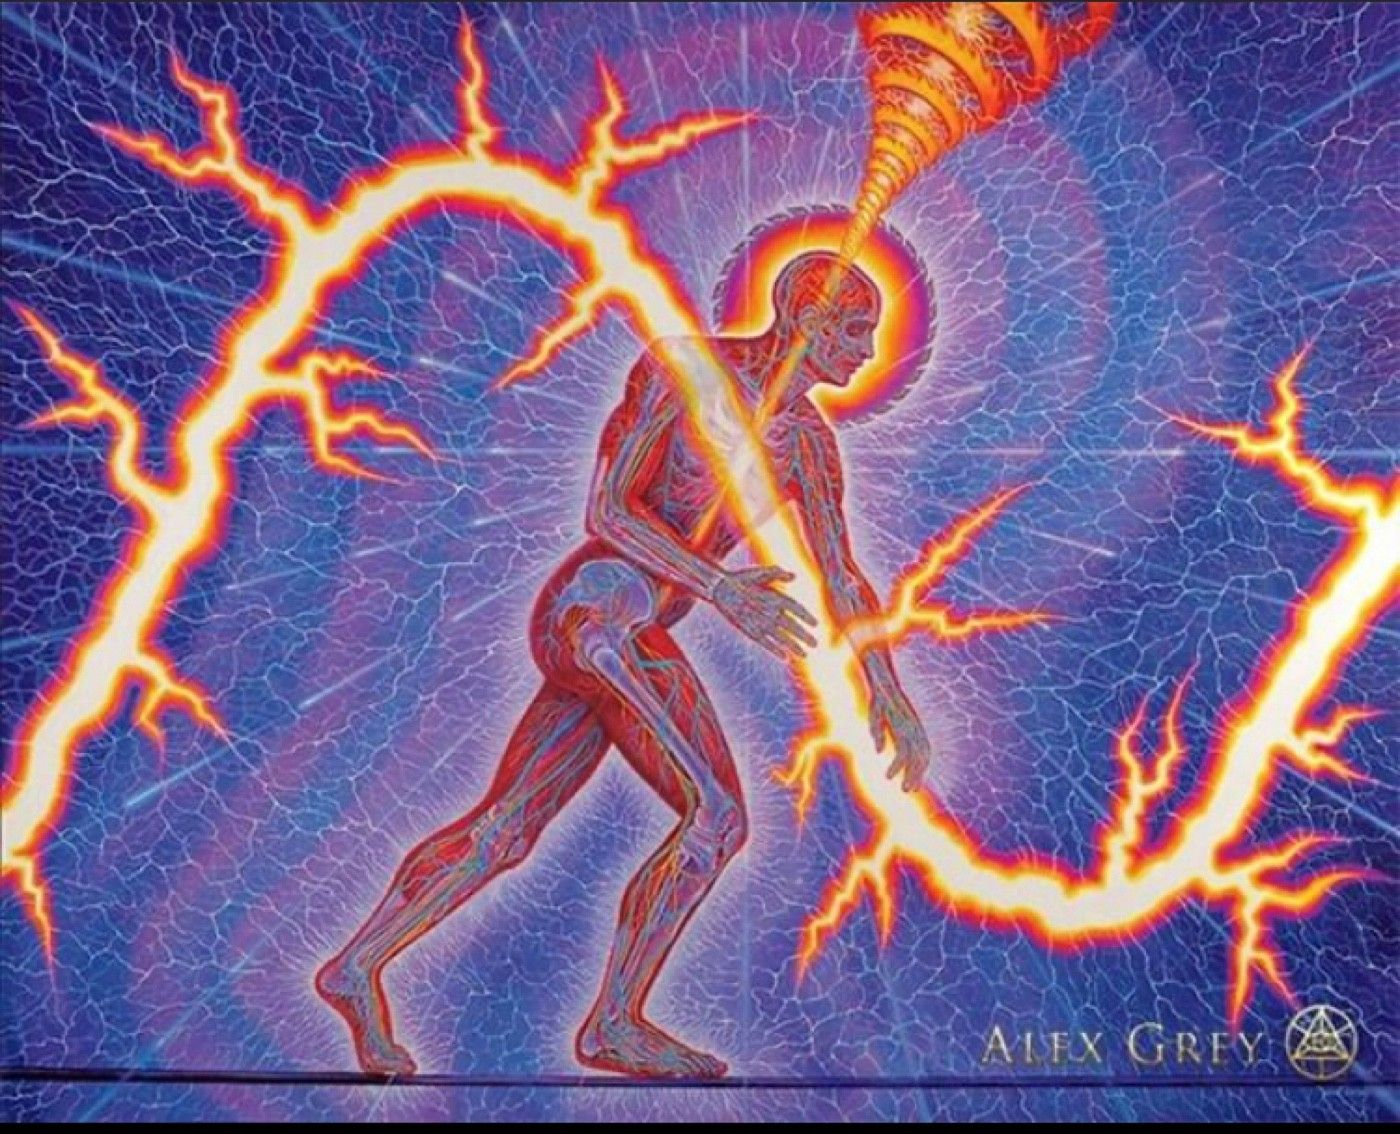 'Lightworker' (2012), oil on linen, by Alex Grey.